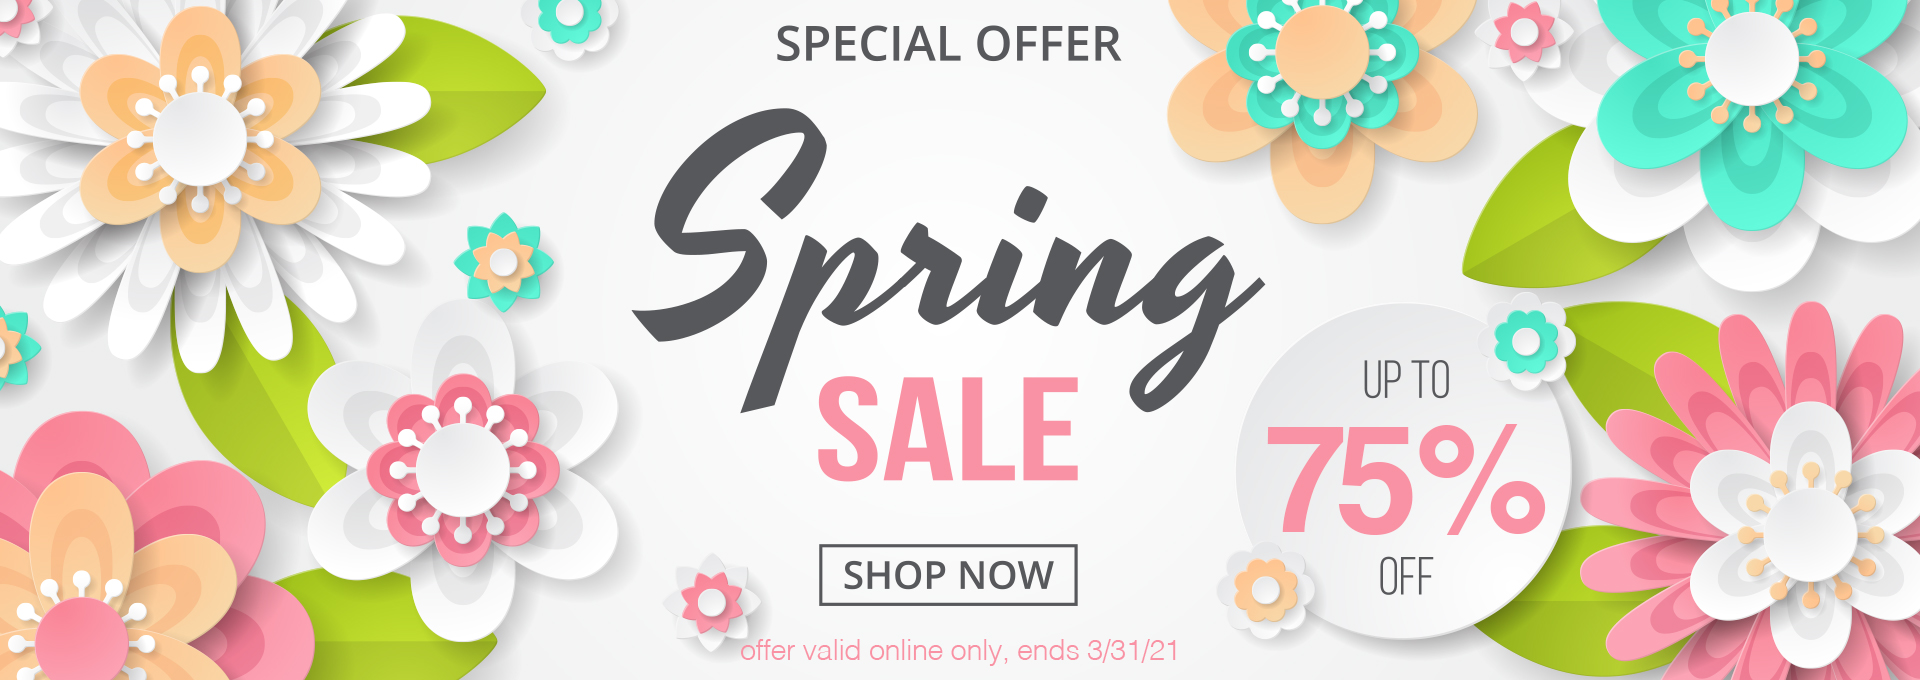 Spring SALE - Up to 75% OFF!